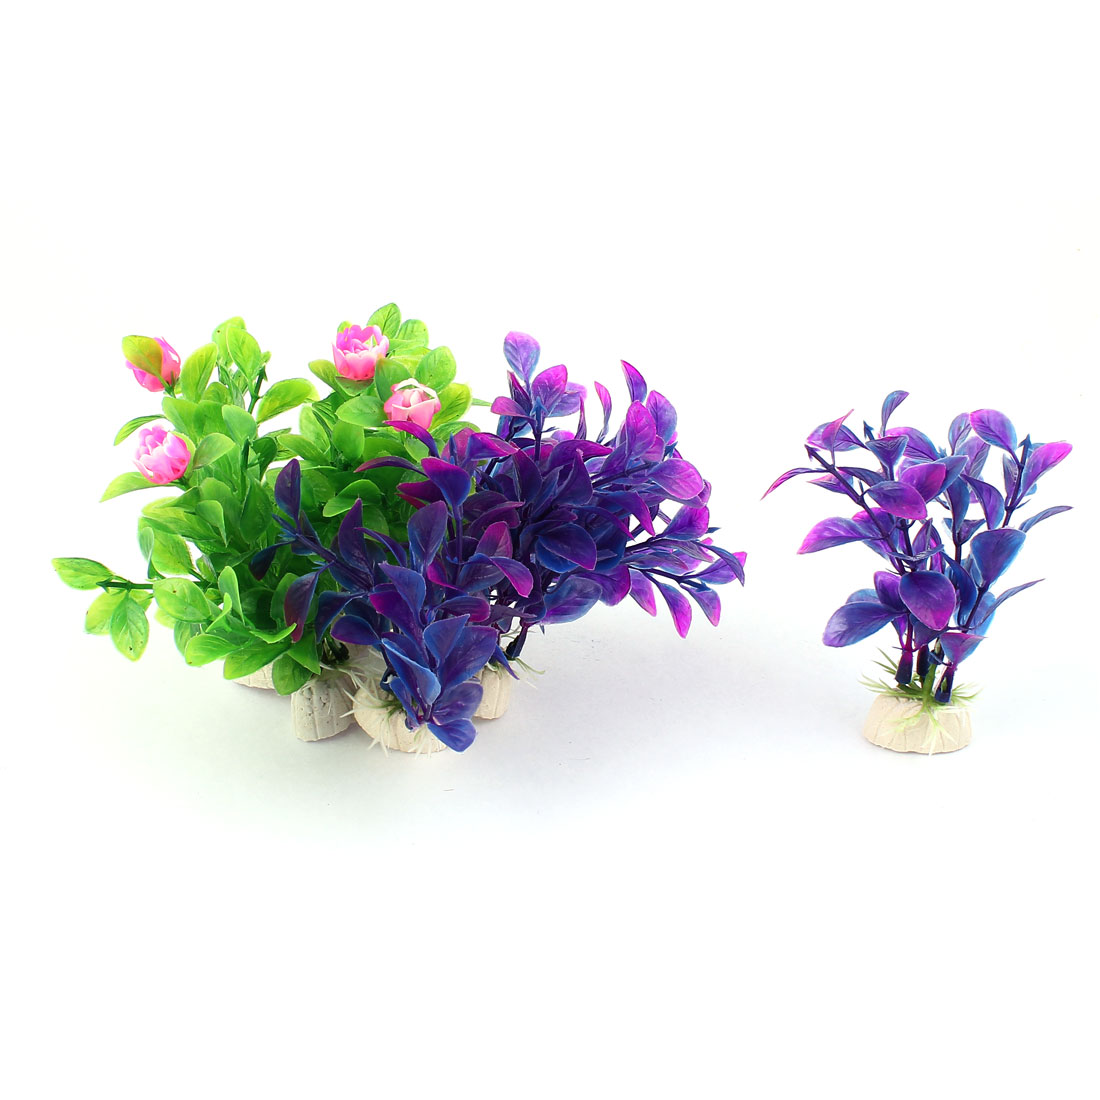 8pcs Aquarium Decoration Fish Tank Simulation Flower Plants Ornaments